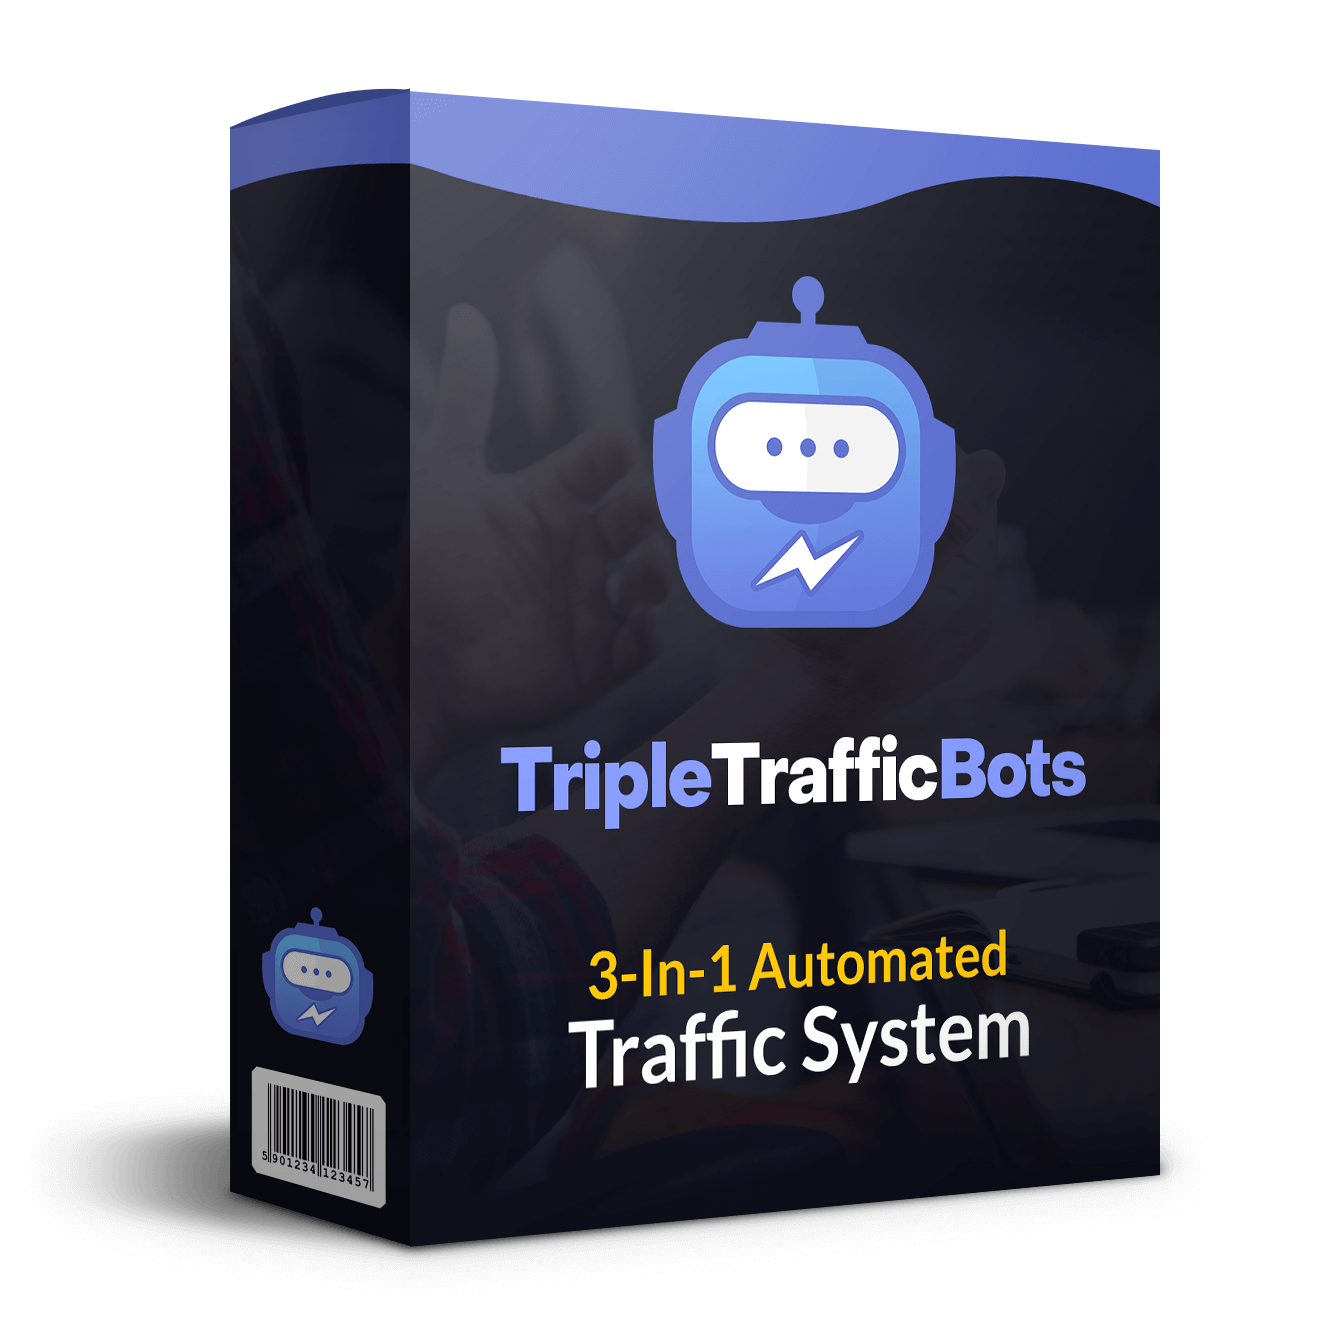 Triple Traffic Bots Review & Bonuses - Should I Get This Software?